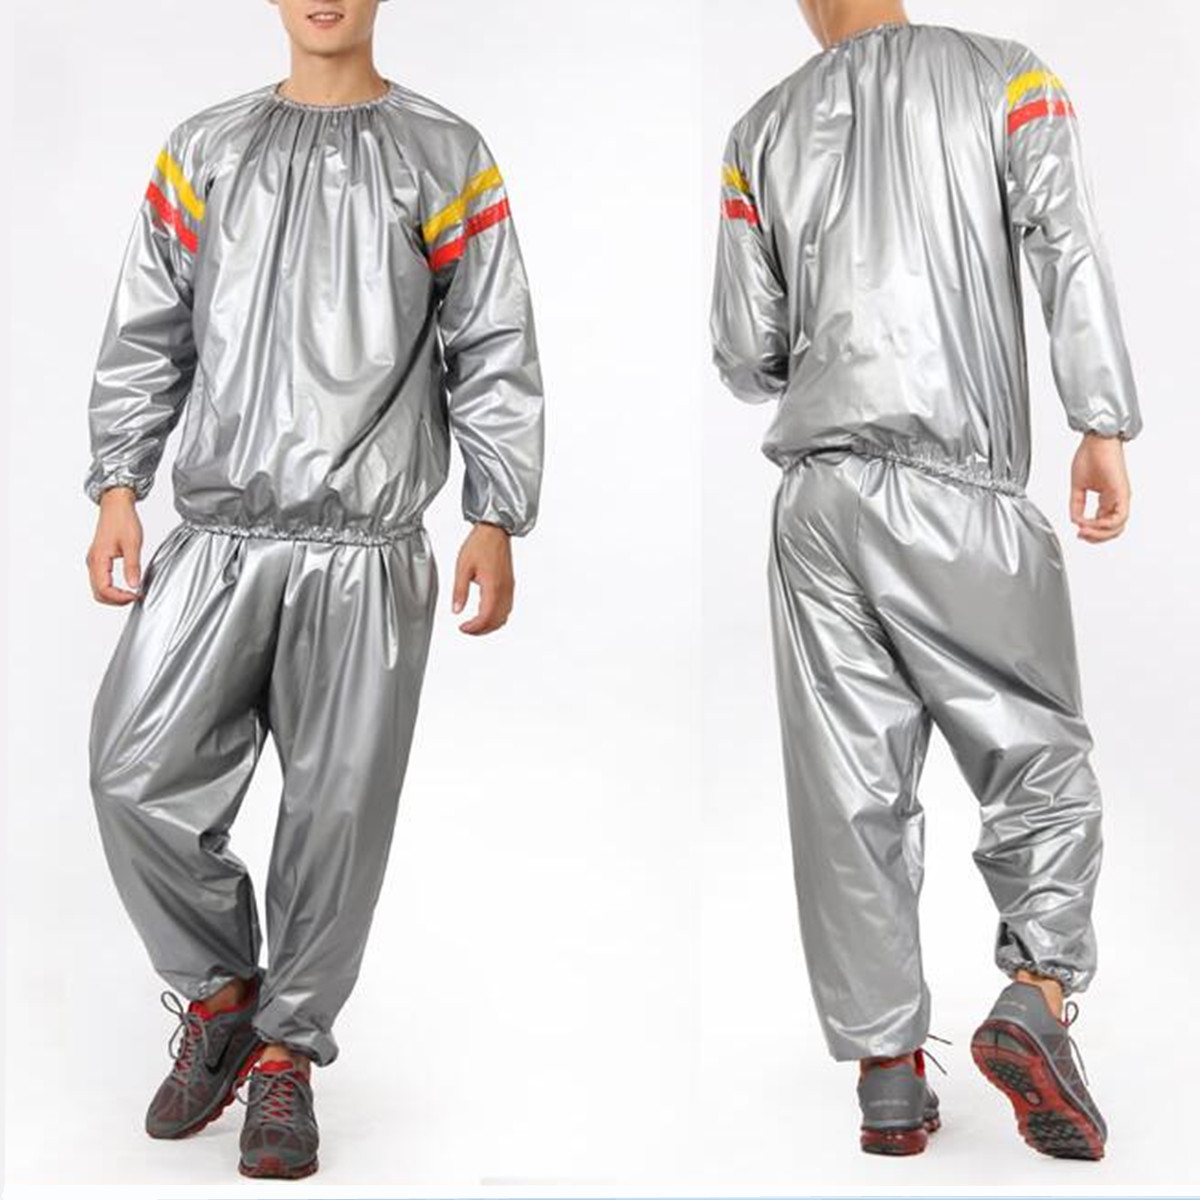 CAMTOA Heavy Duty Sauna Suit Clothes Exercise Gym Fitness Weight Loss Anti-Rip